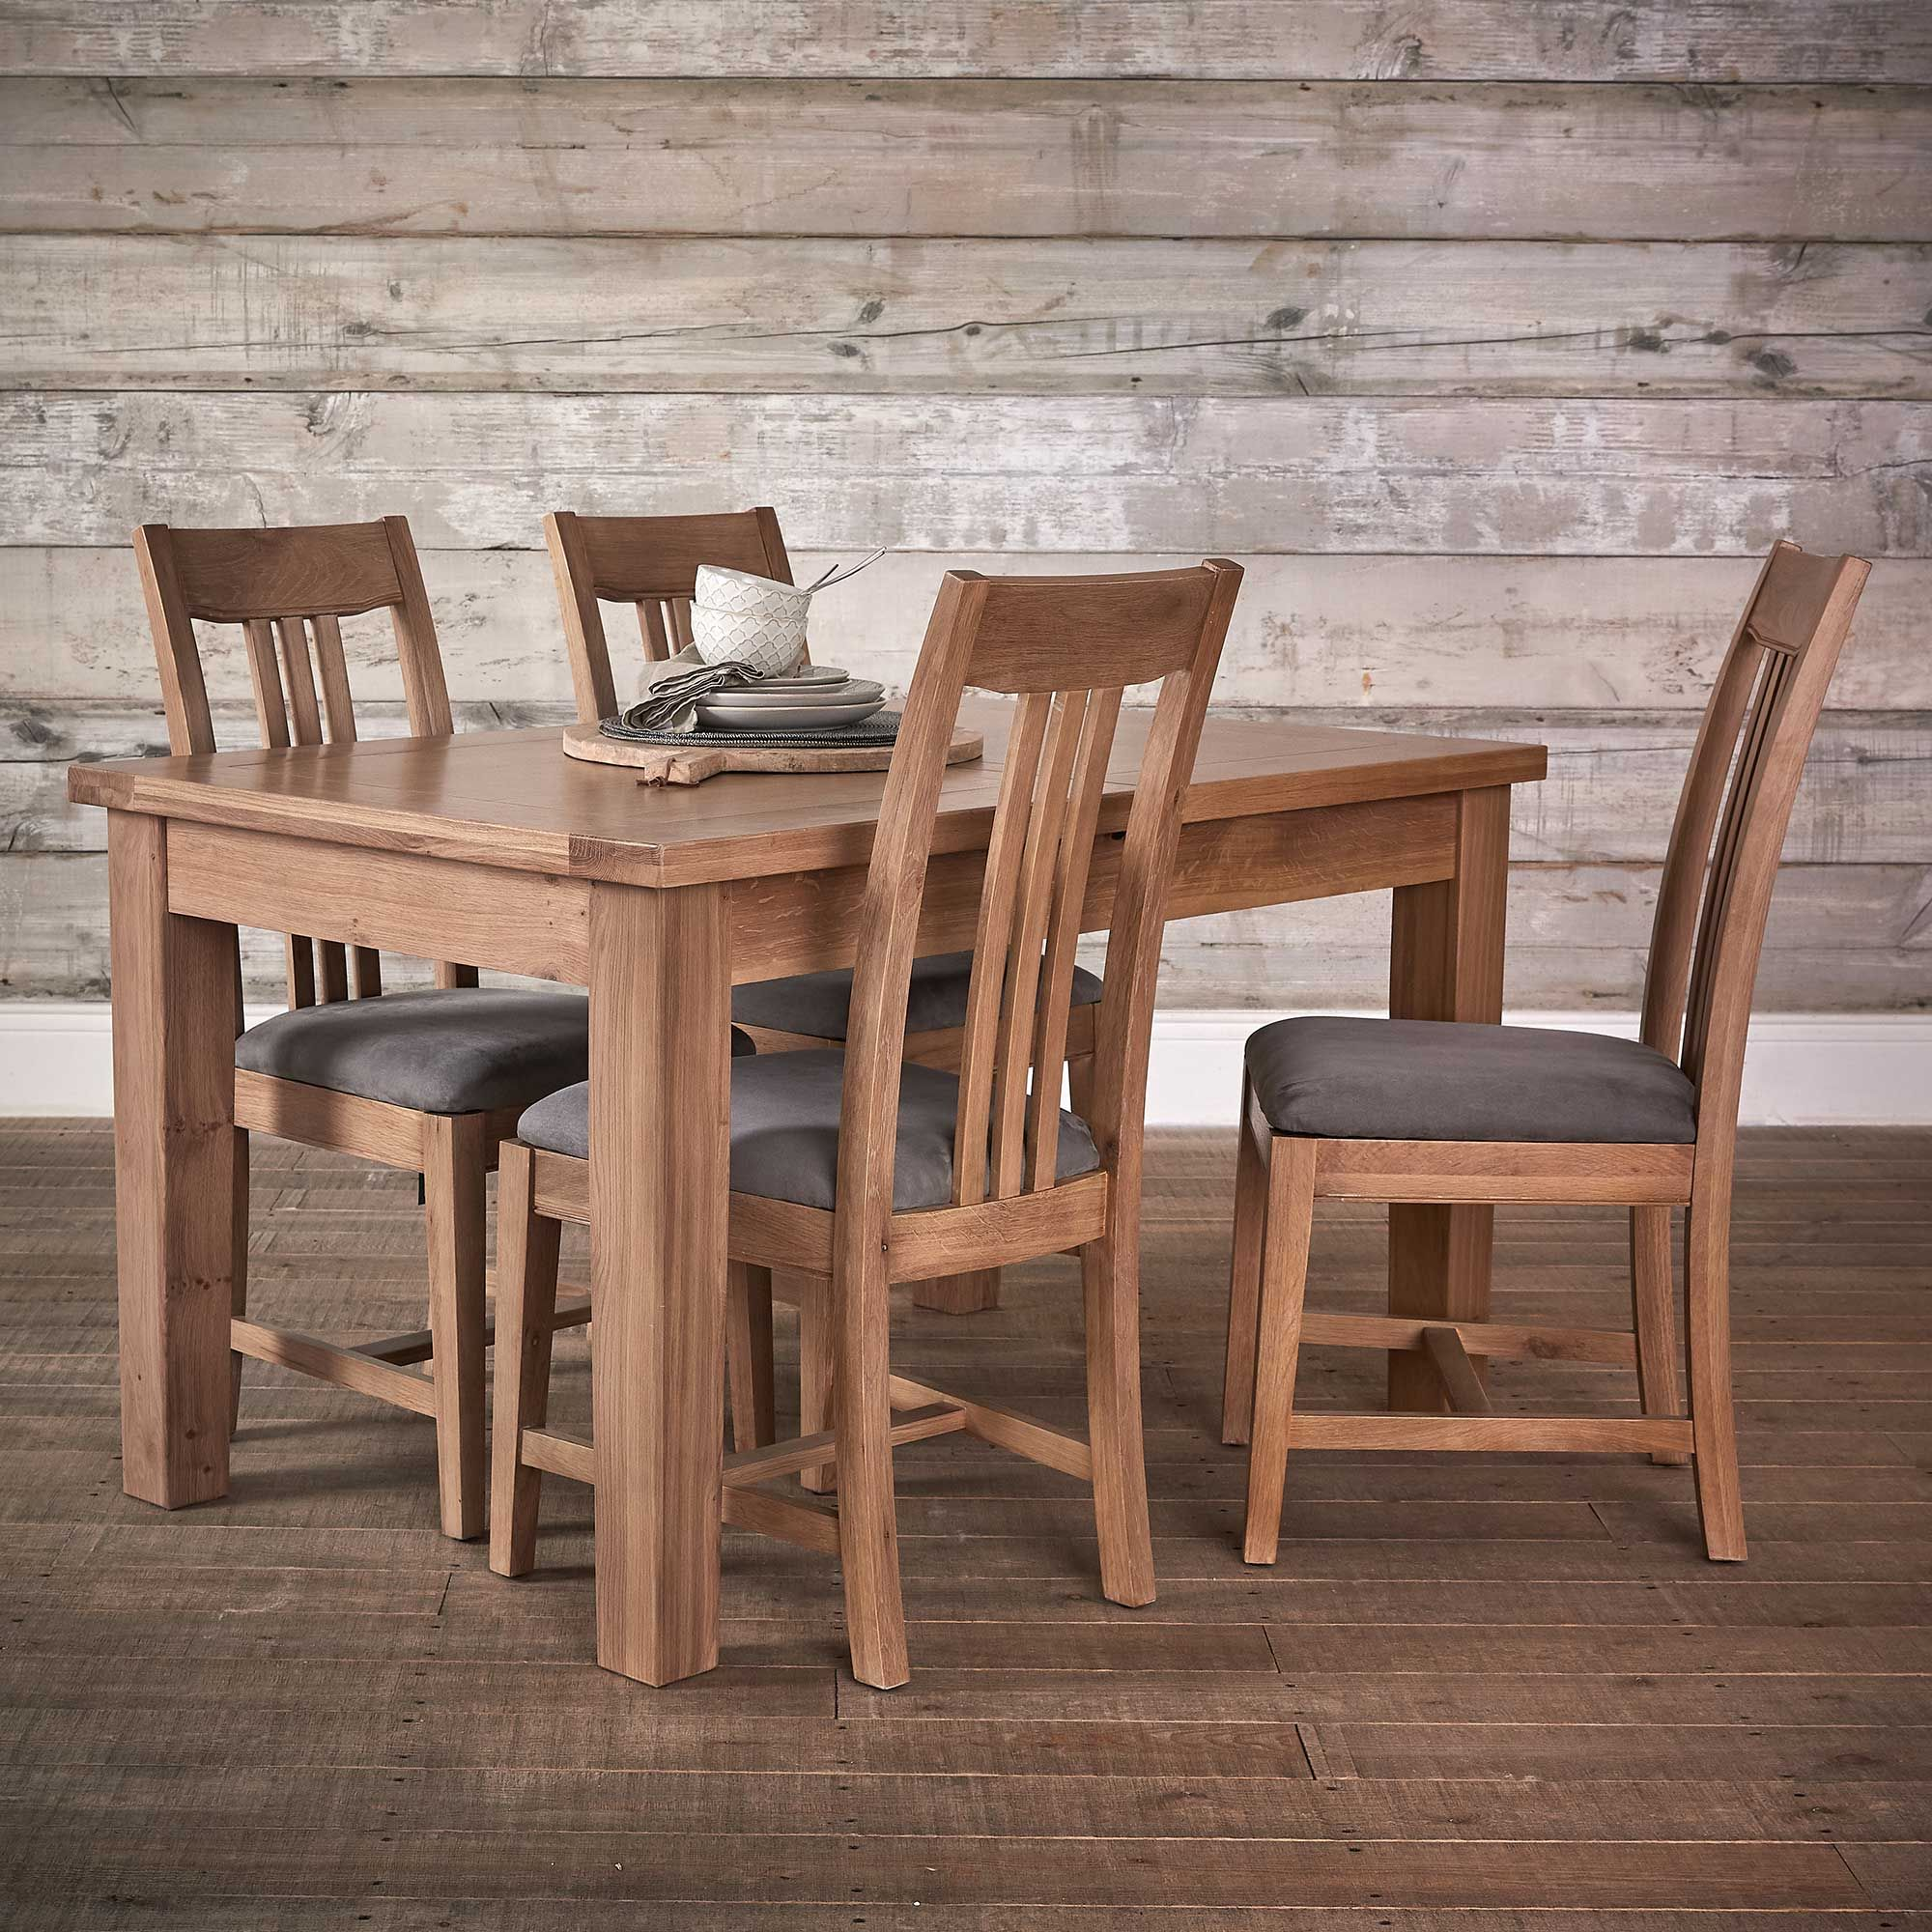 Ripley Large Extending Dining Table And 4 Oak Dining Chairs With